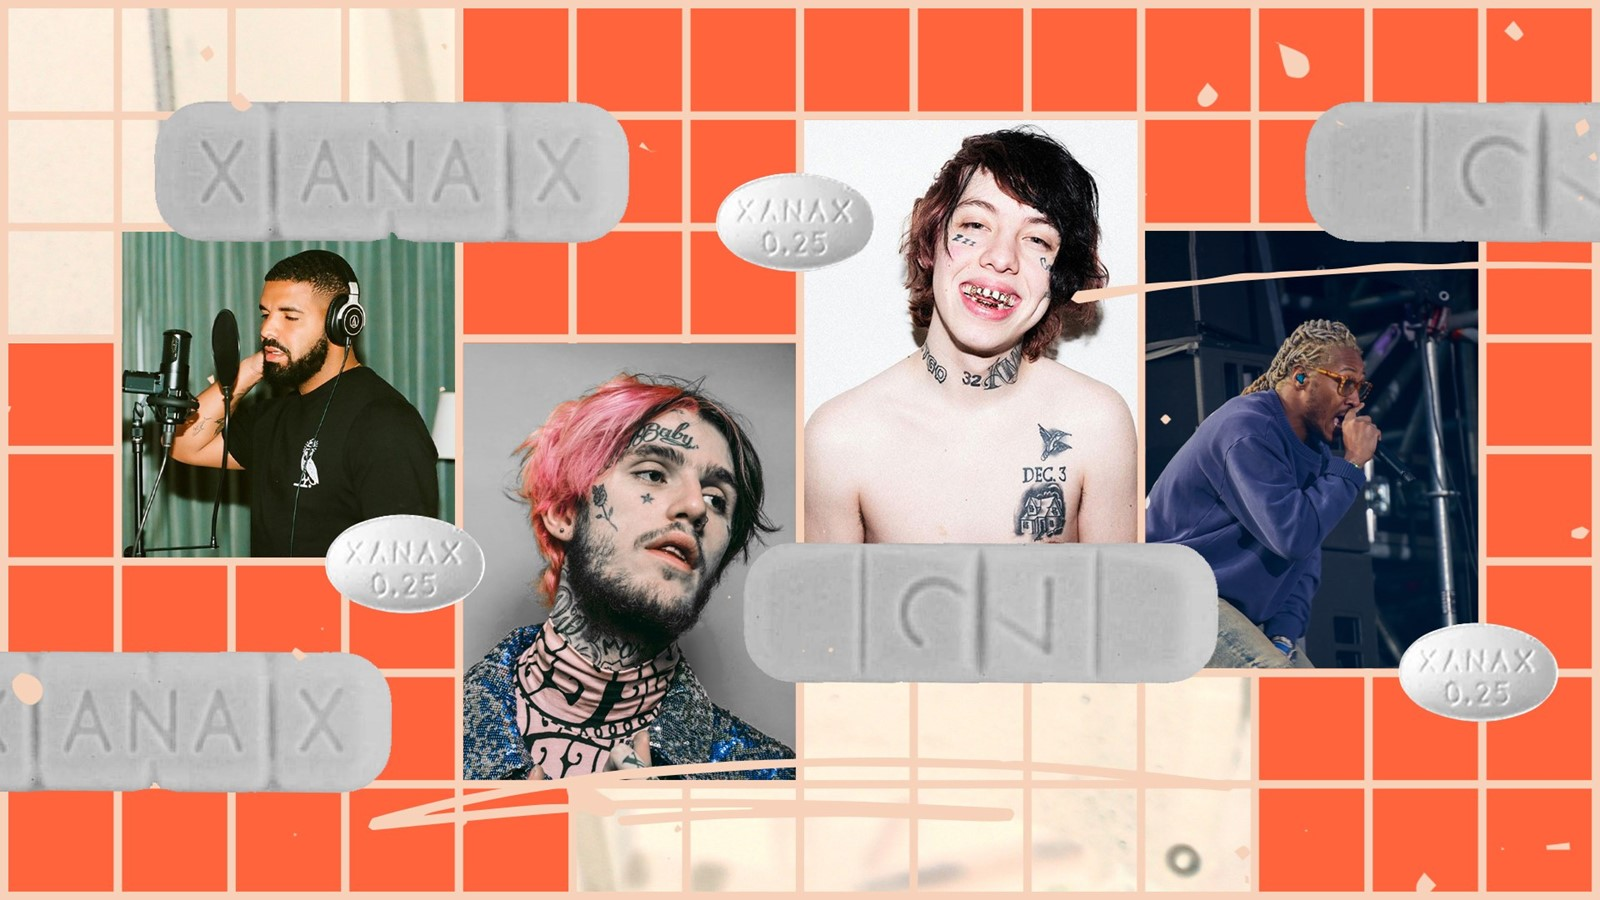 Xanax: the drug that defined the decade and changed rap